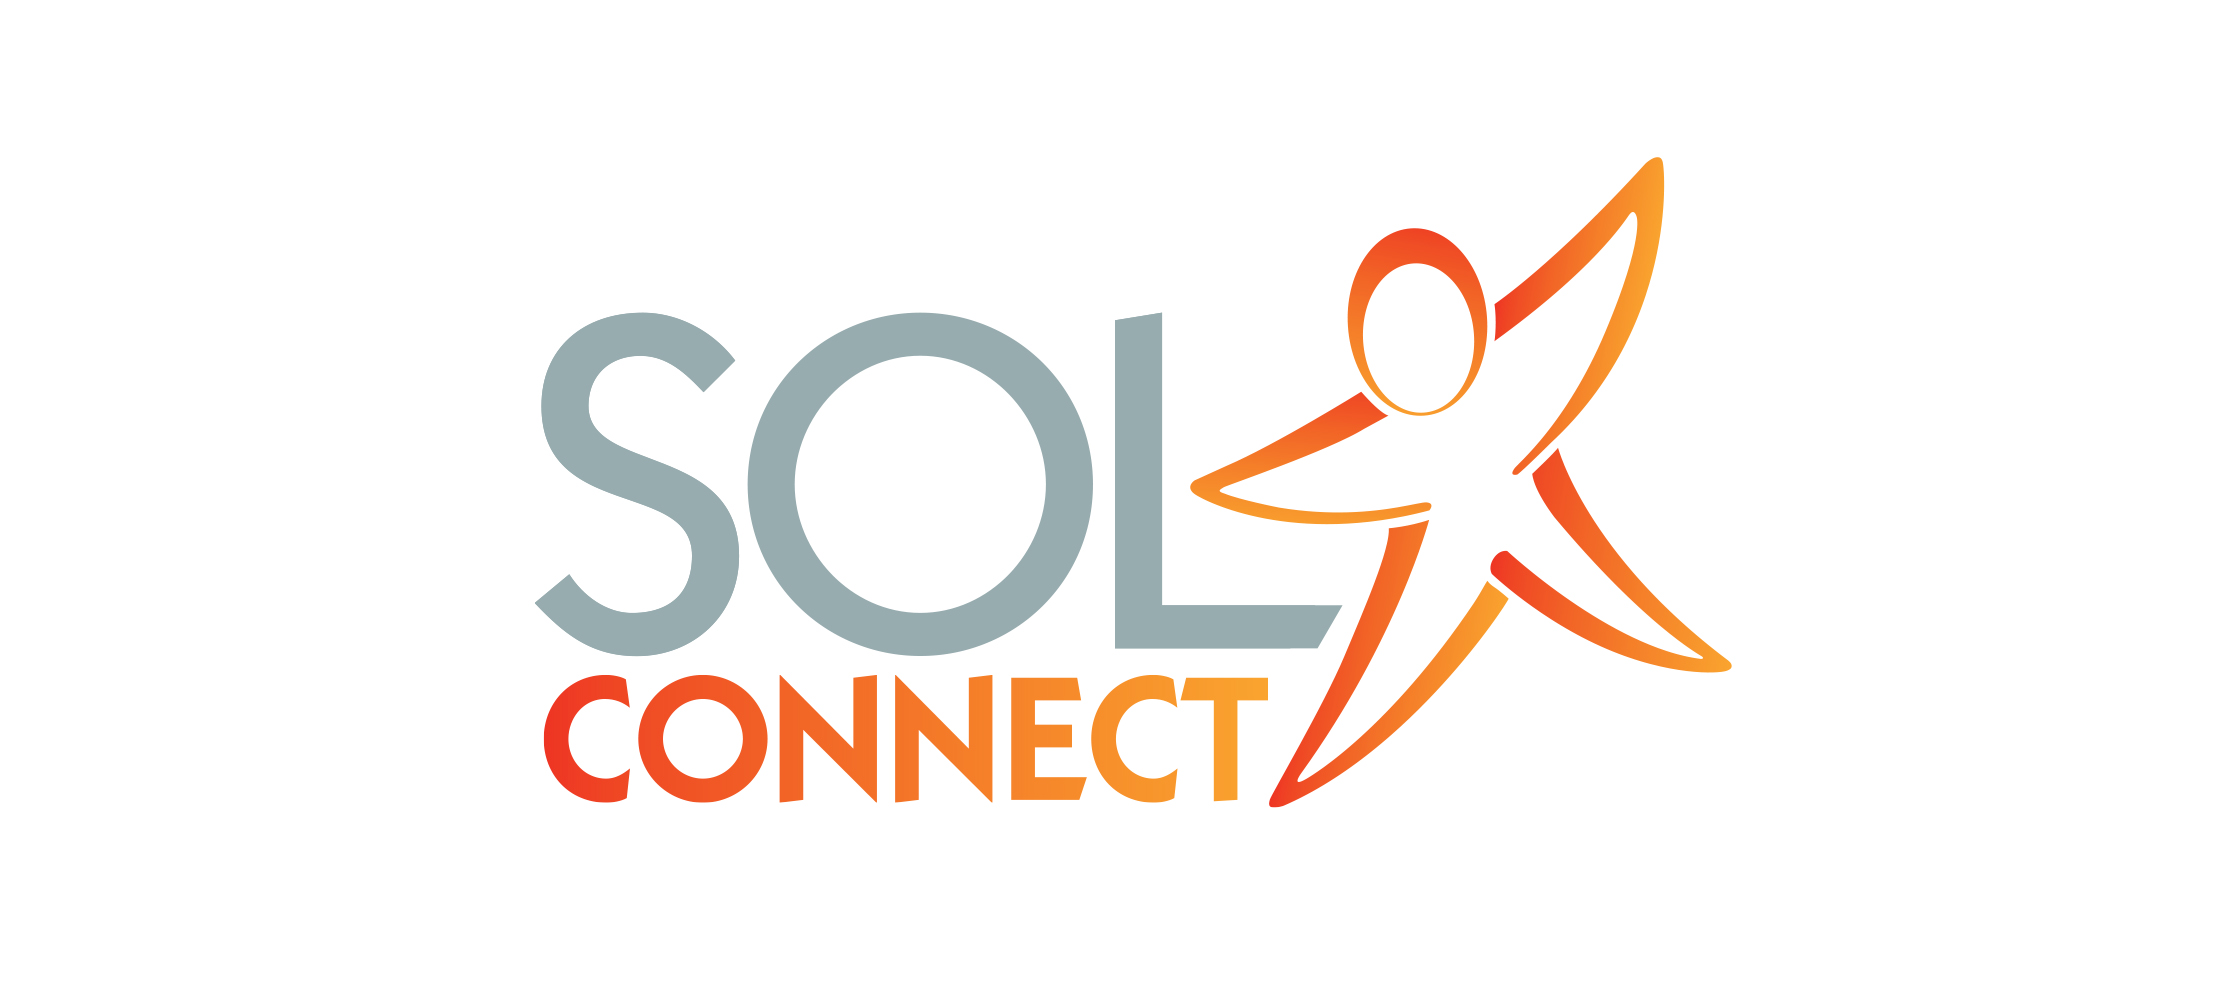 SOL Connect